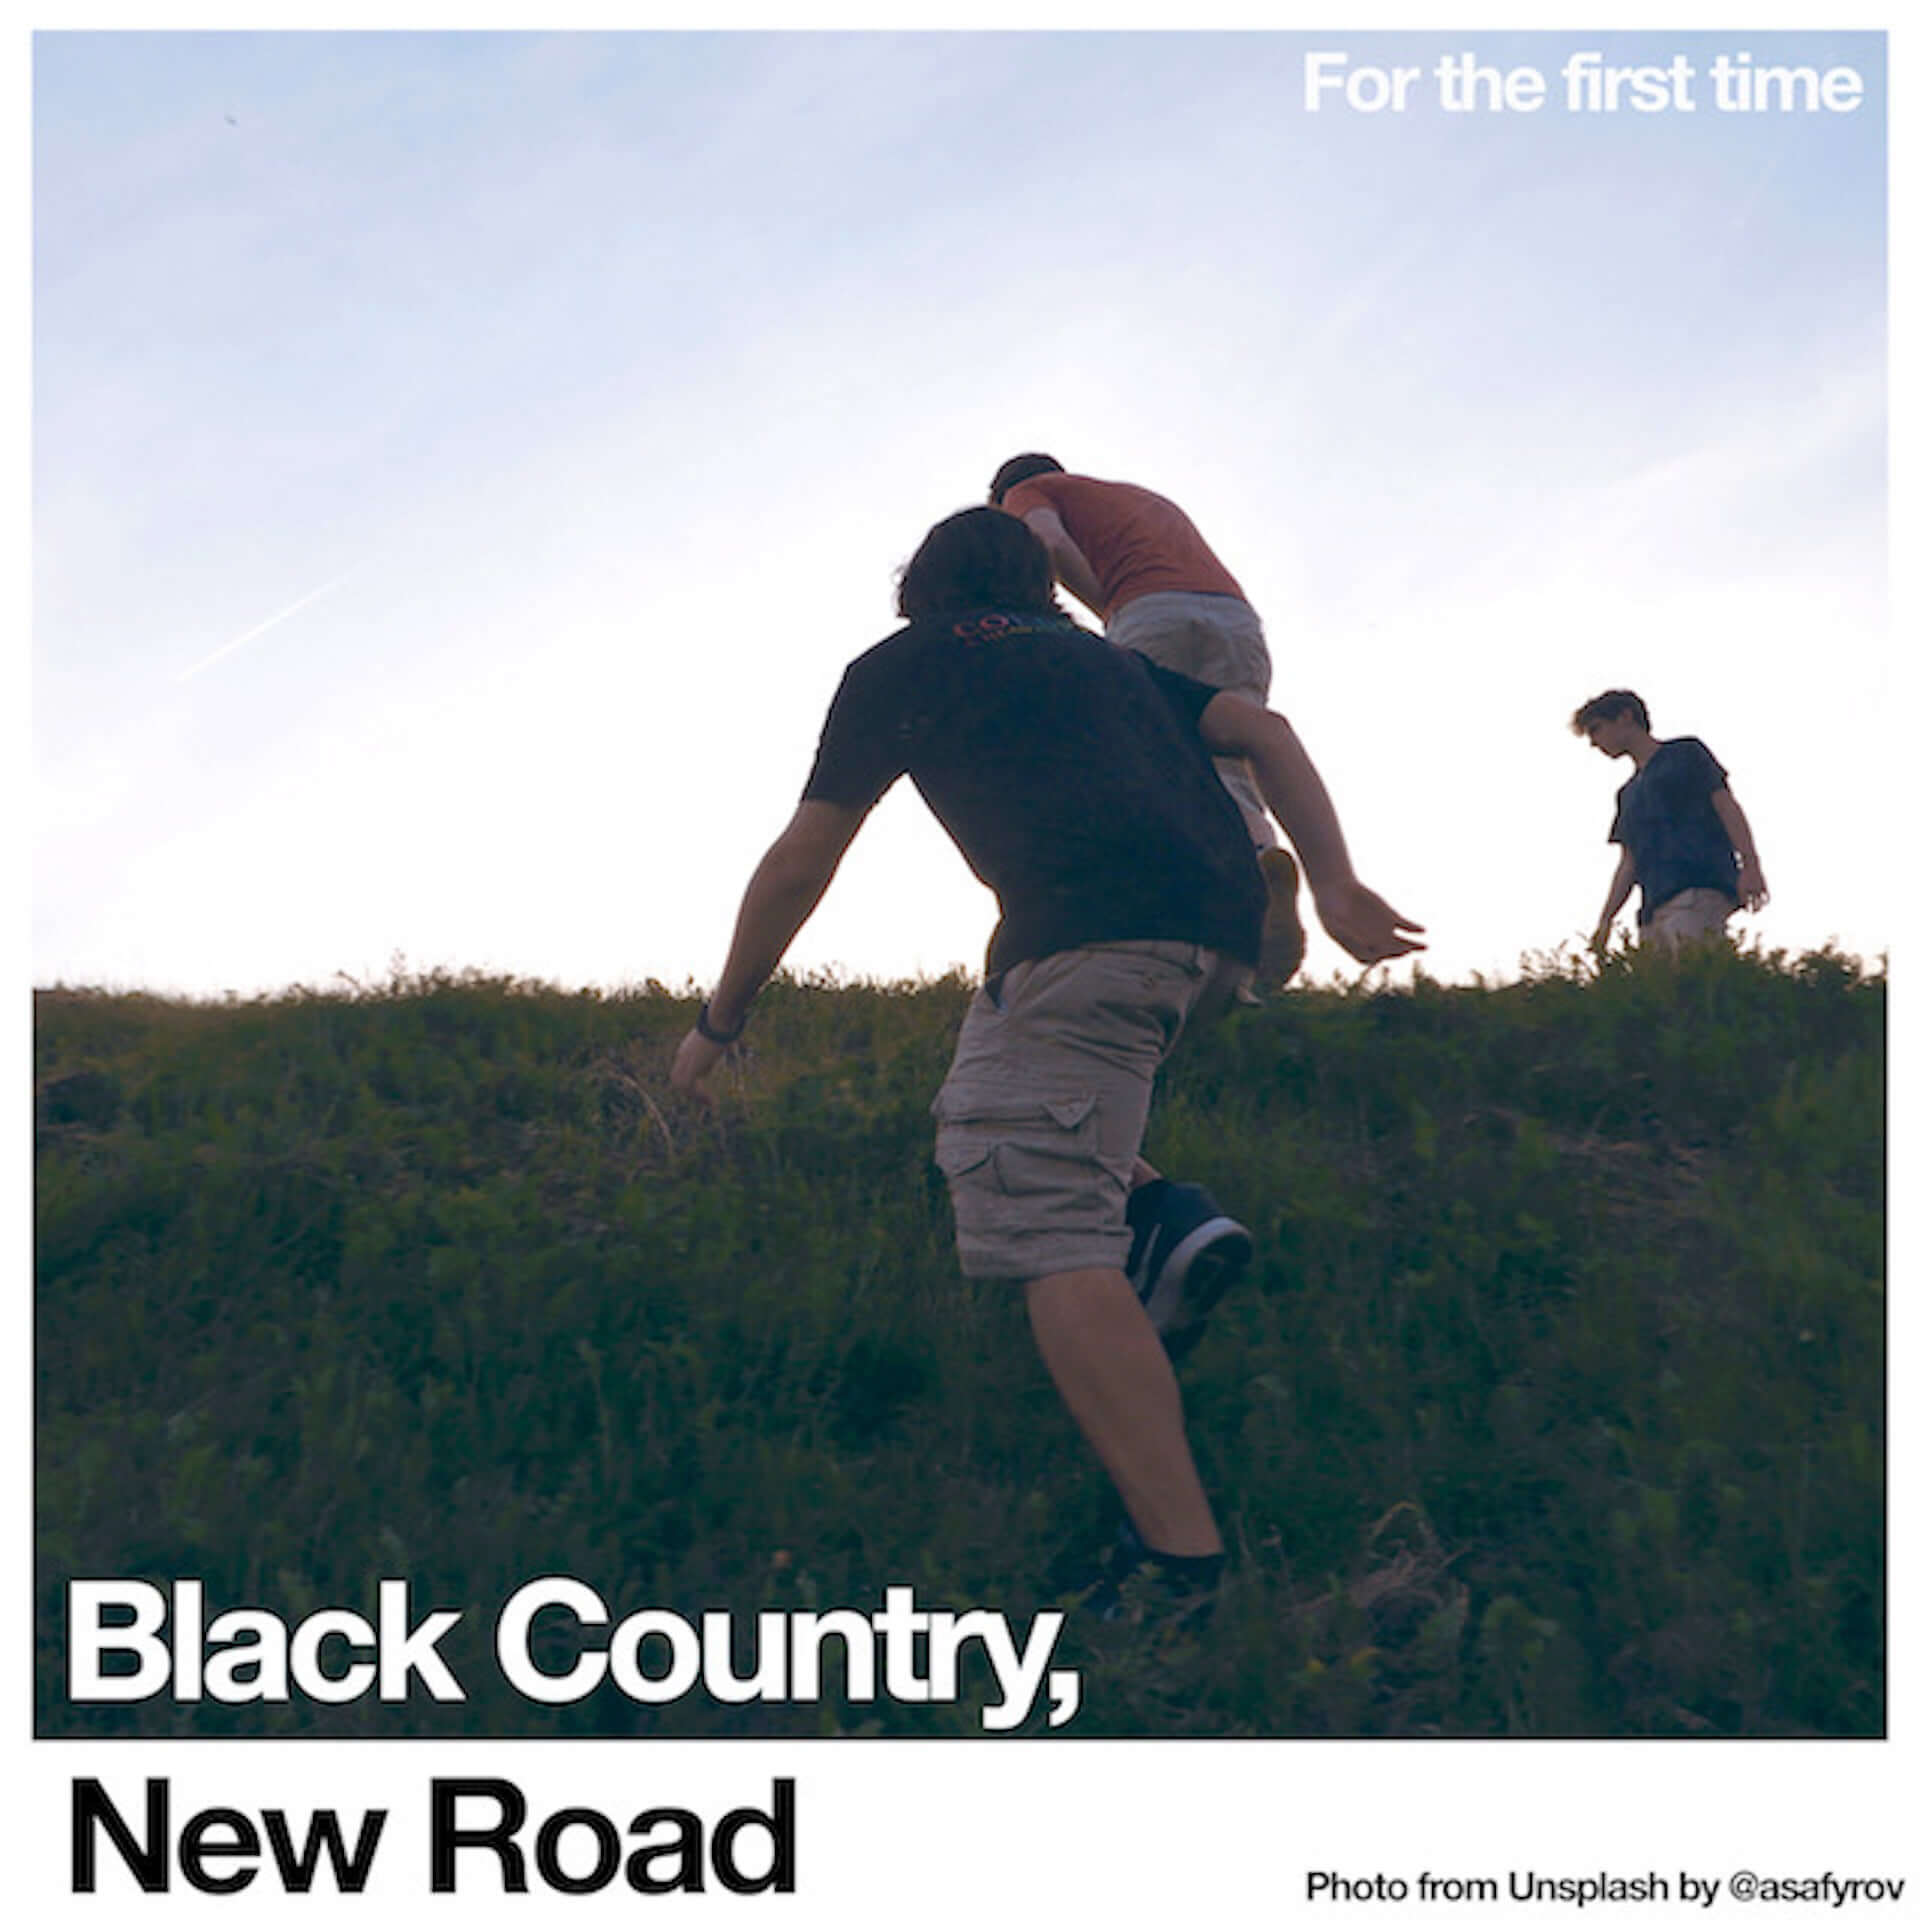 "Black Country, New Roadのデビュー作『For the first time』より新曲""Track X""が公開!日本語字幕付きMVも解禁 music210112_bcnr_3-1920x1920"